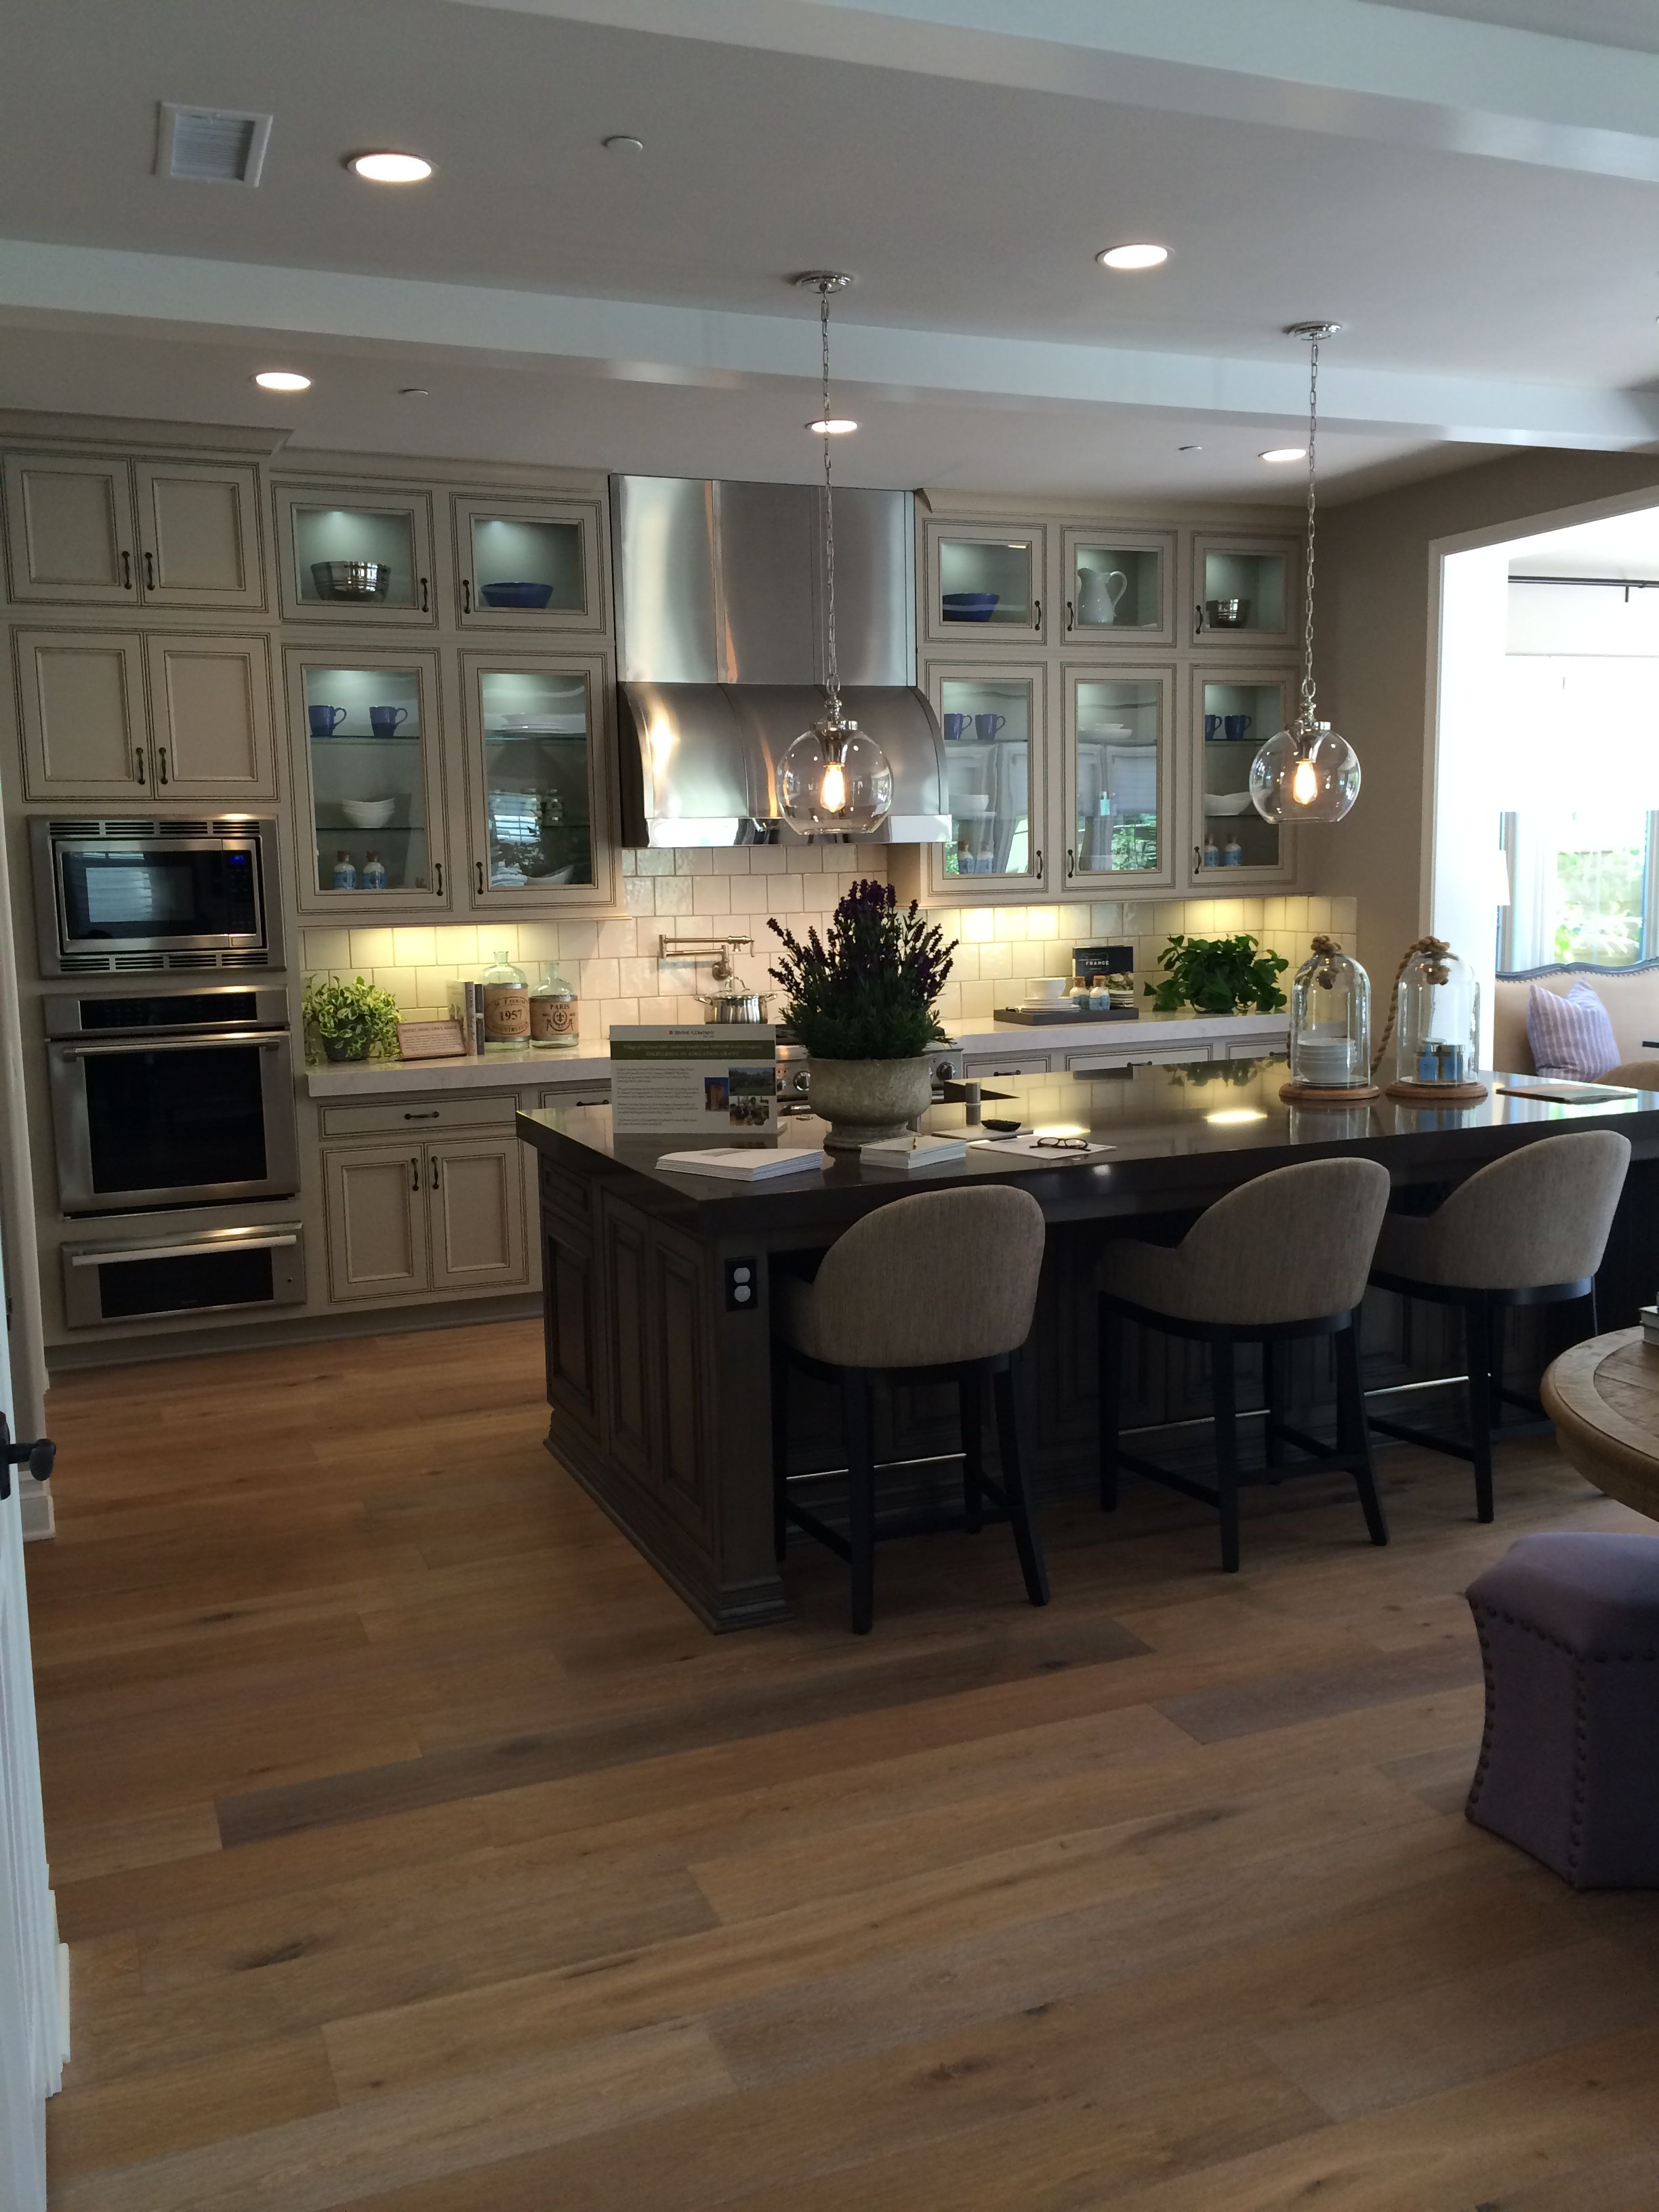 Affordable Farmhouse Kitchen, Country